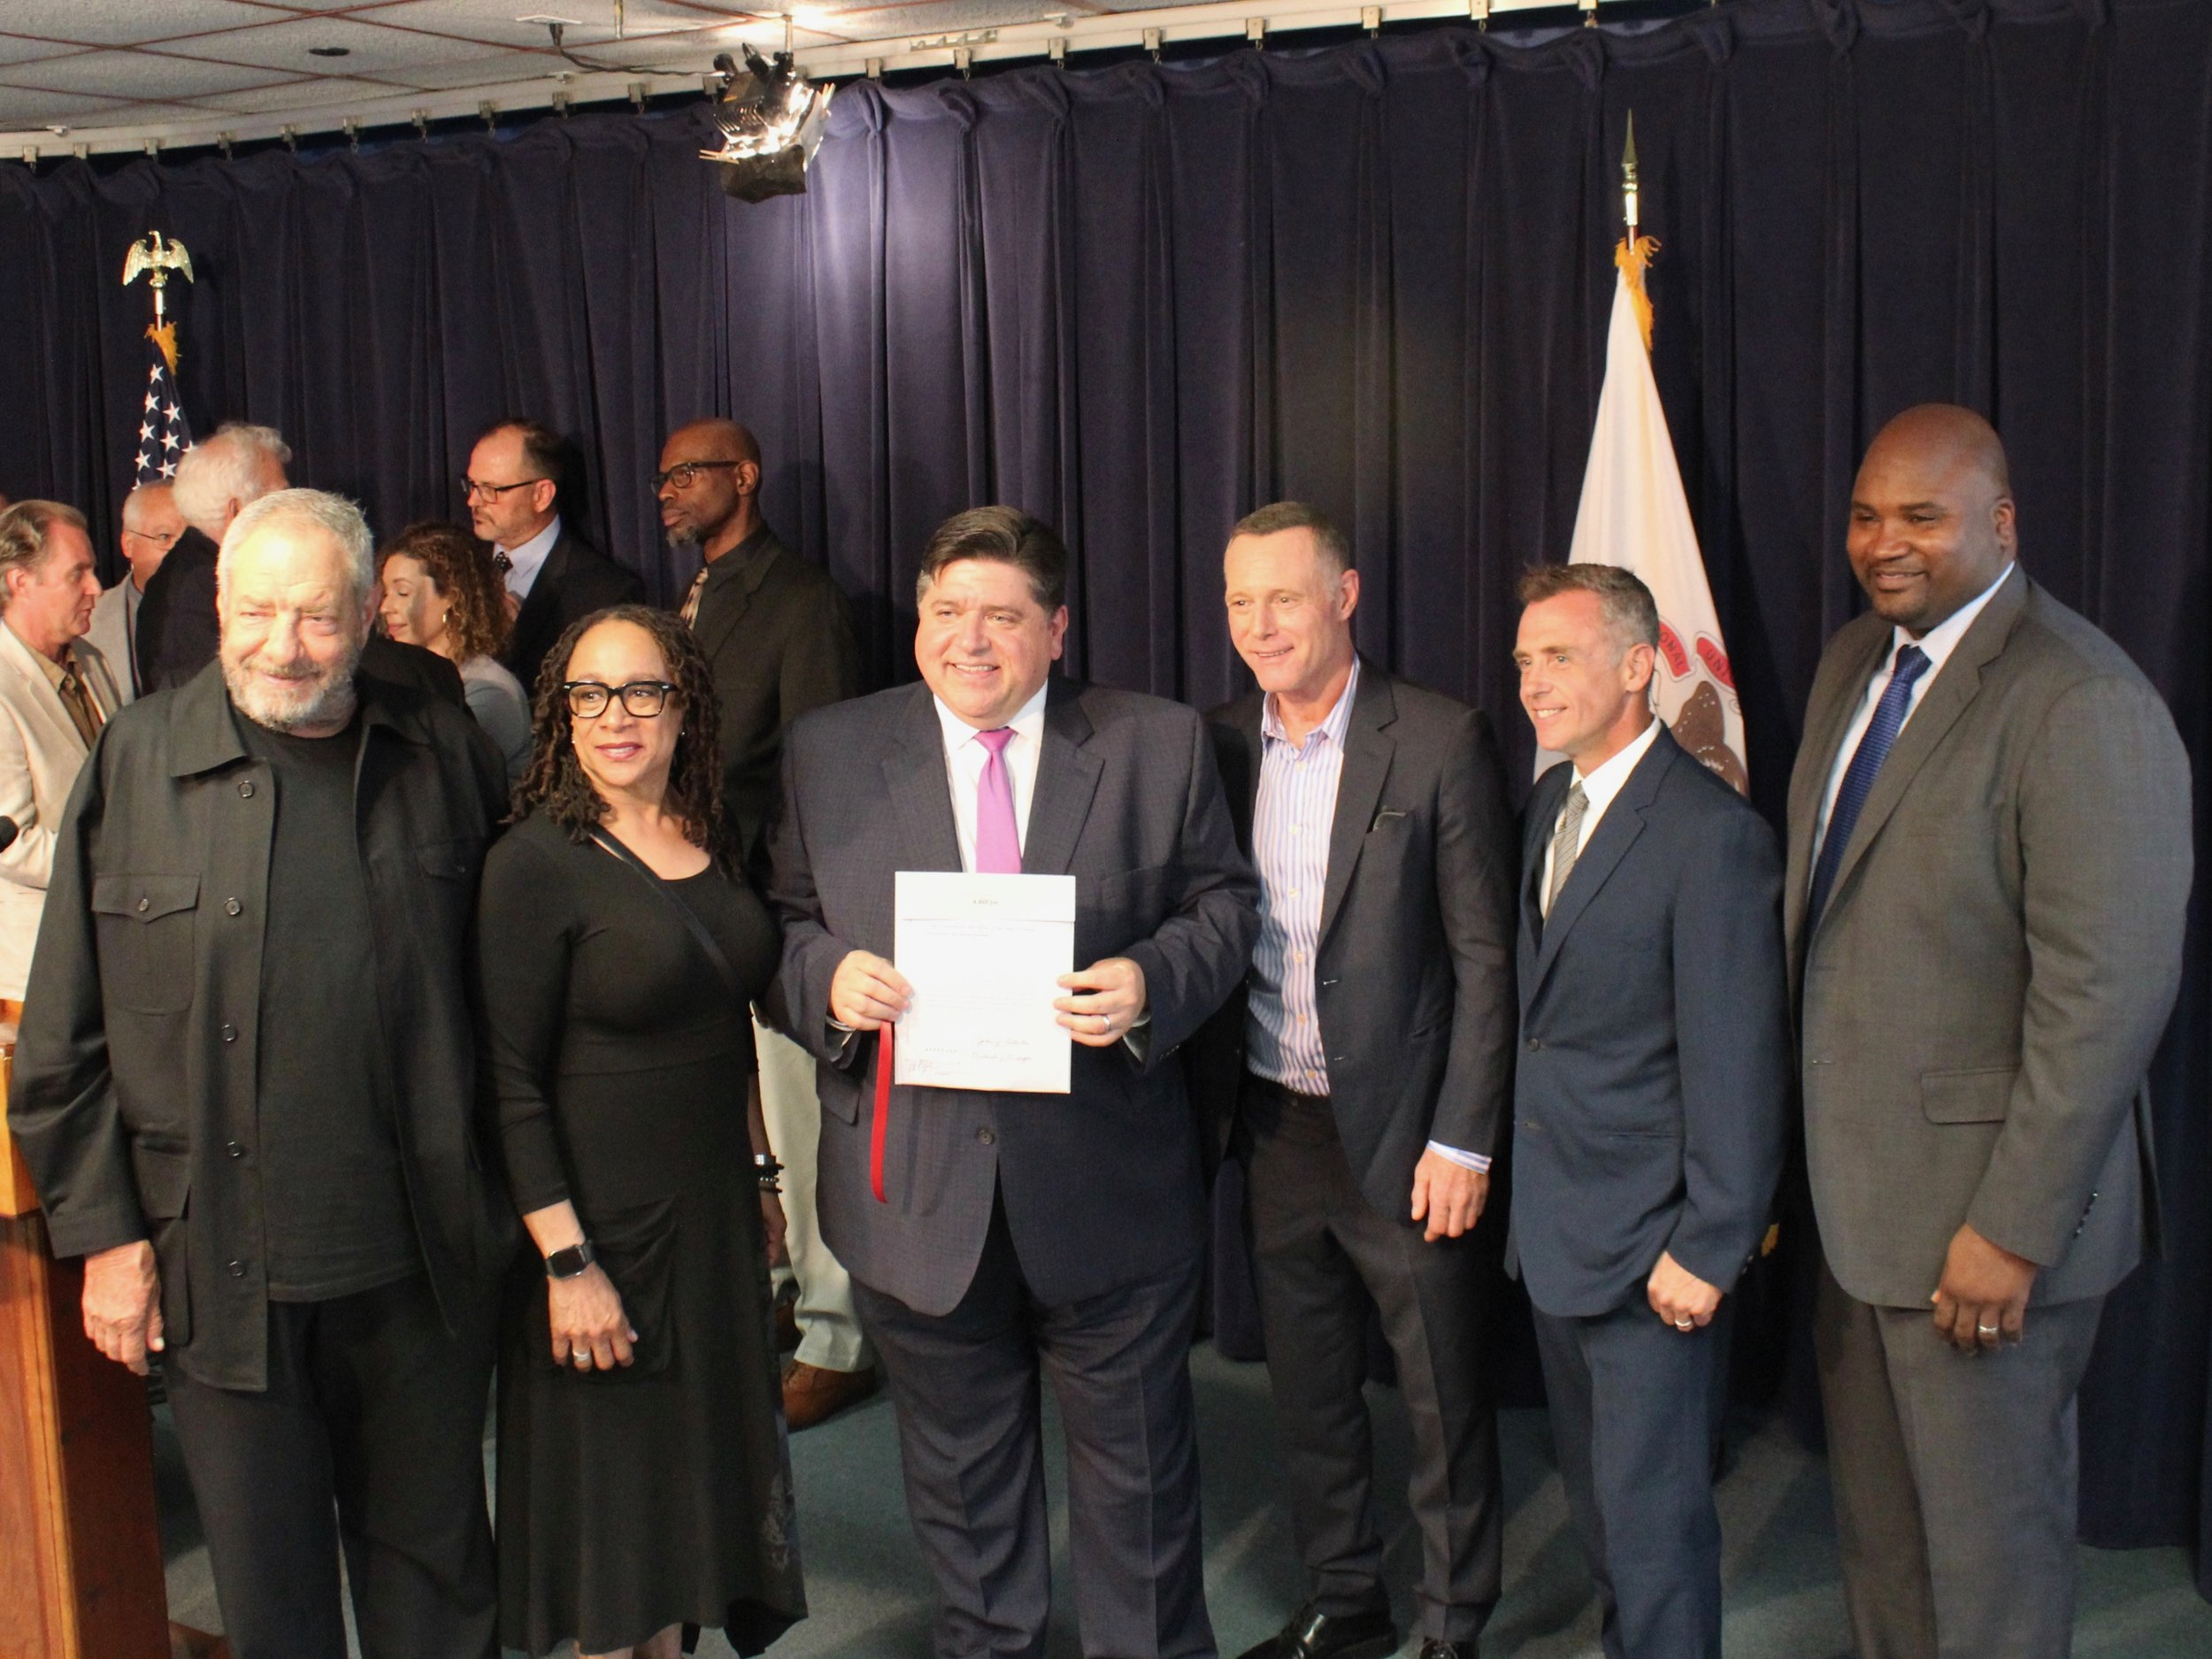 """Gov. Pritzker brandishes extension of the film tax credit, joined by state Sen. Elgie Sims (right) along with TV producer Dick Wolf and actors S. Epatha Merkerson of """"Chicago Med,"""" Jason Beghe of """"Chicago P.D.,"""" and David Eigenberg of """"Chicago Fire."""""""